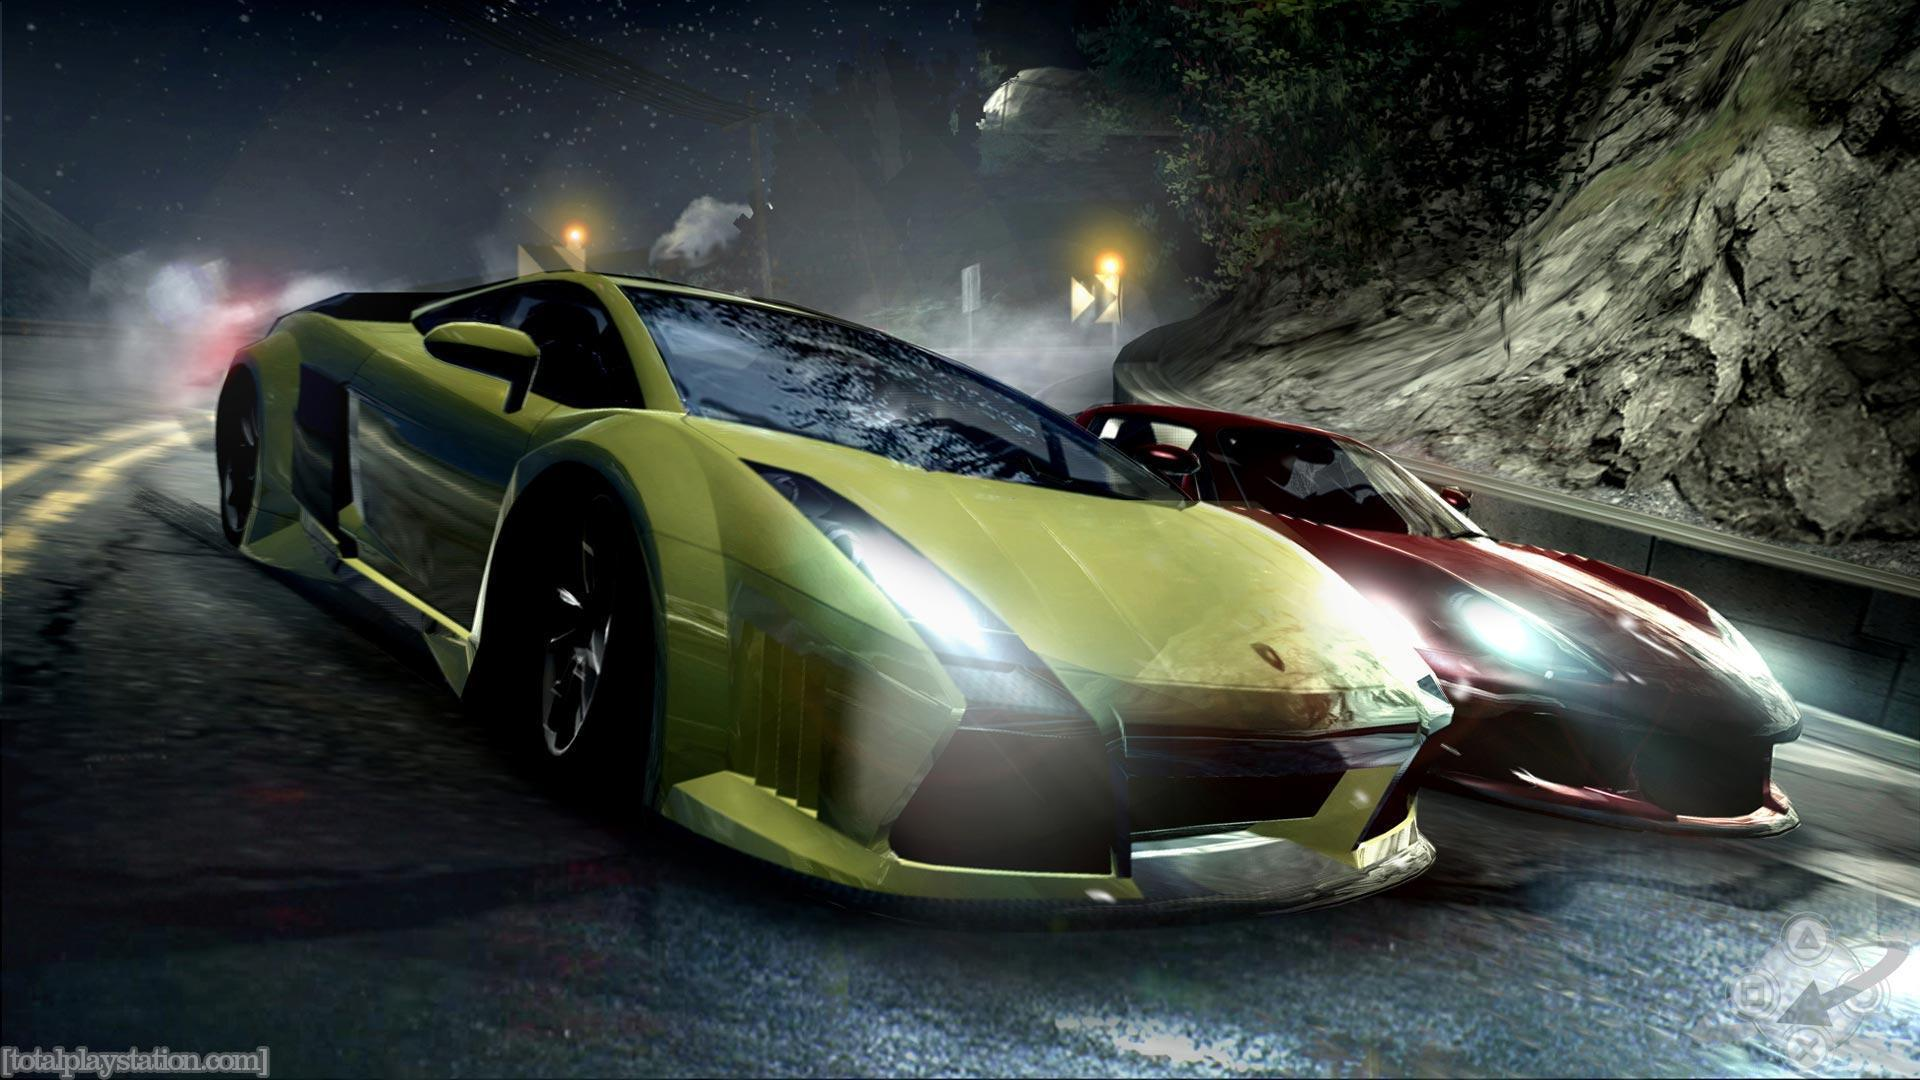 Need For Speed wallpaper - 132641